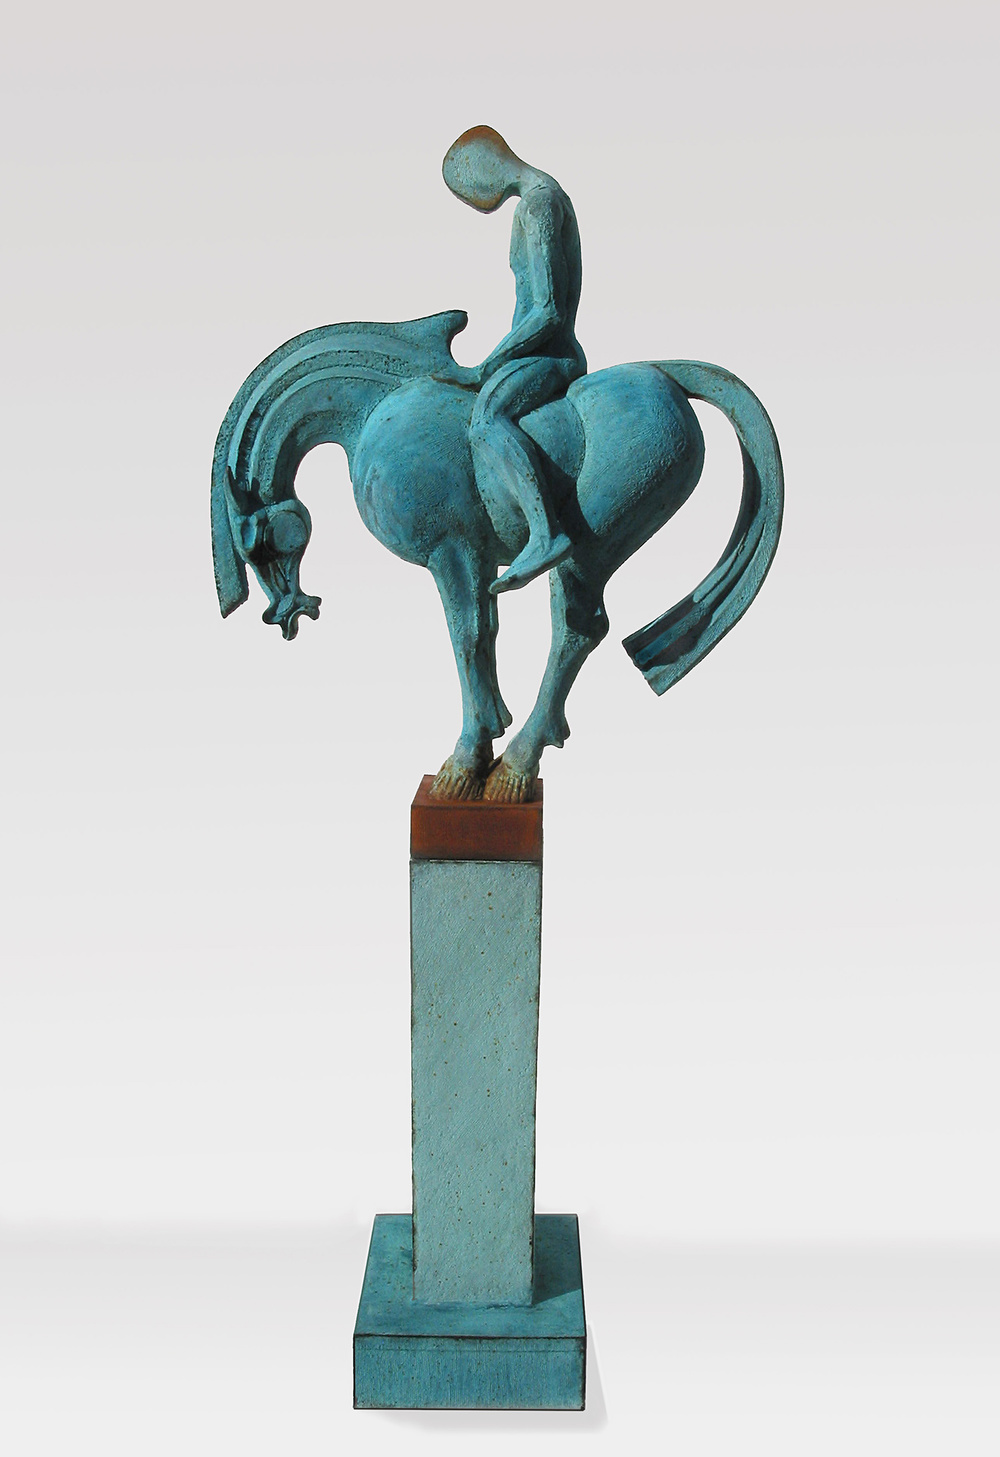 Tang Blue   ©  118 cm high x 51 cm wide  Unique  Diamantopoulo has taken the basic long-necked Tang Horse form and counter-balanced it, more or less exactly, with an atypical extended tail so that it stands precariously like a vase on a plinth – yet seems perfectly composed in the restful sense.  The horse and rider are blue - in the R&B sense.